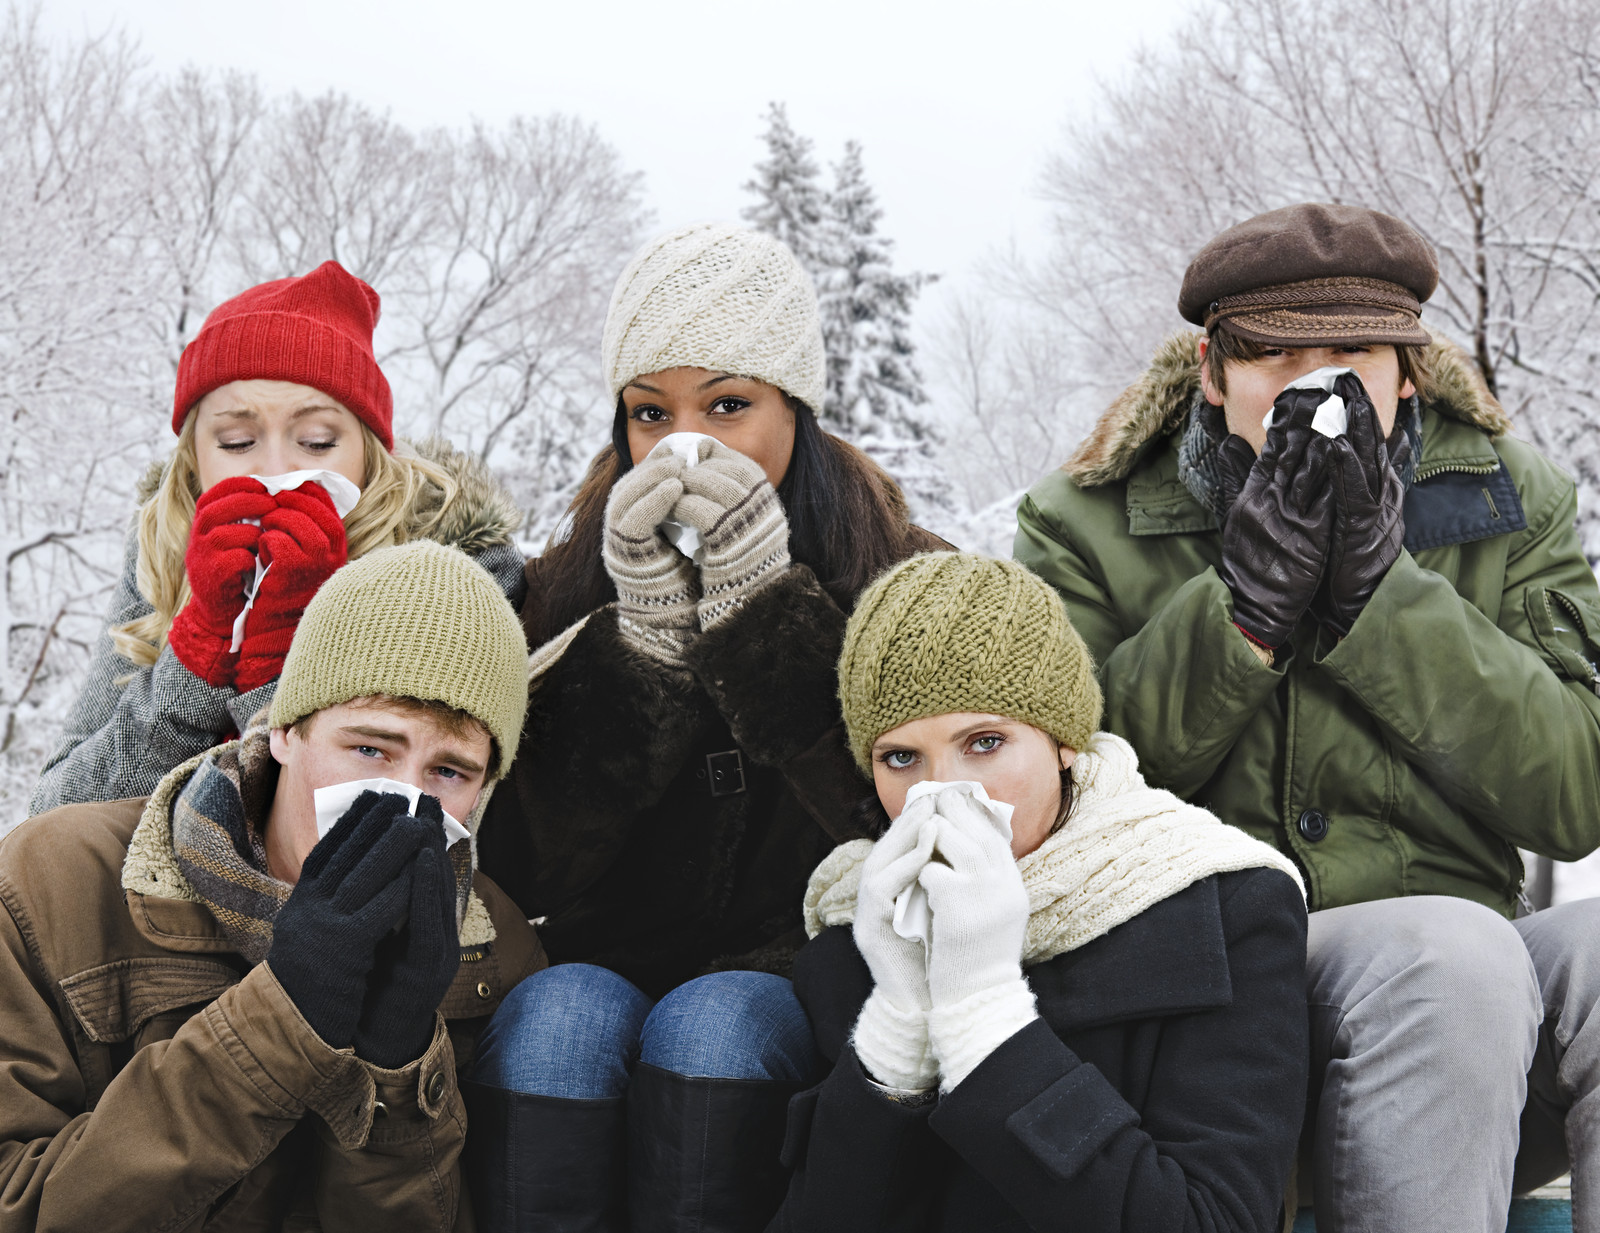 Winter and Your Immune System: Does Cold Weather Make It Easier to Catch a Cold?